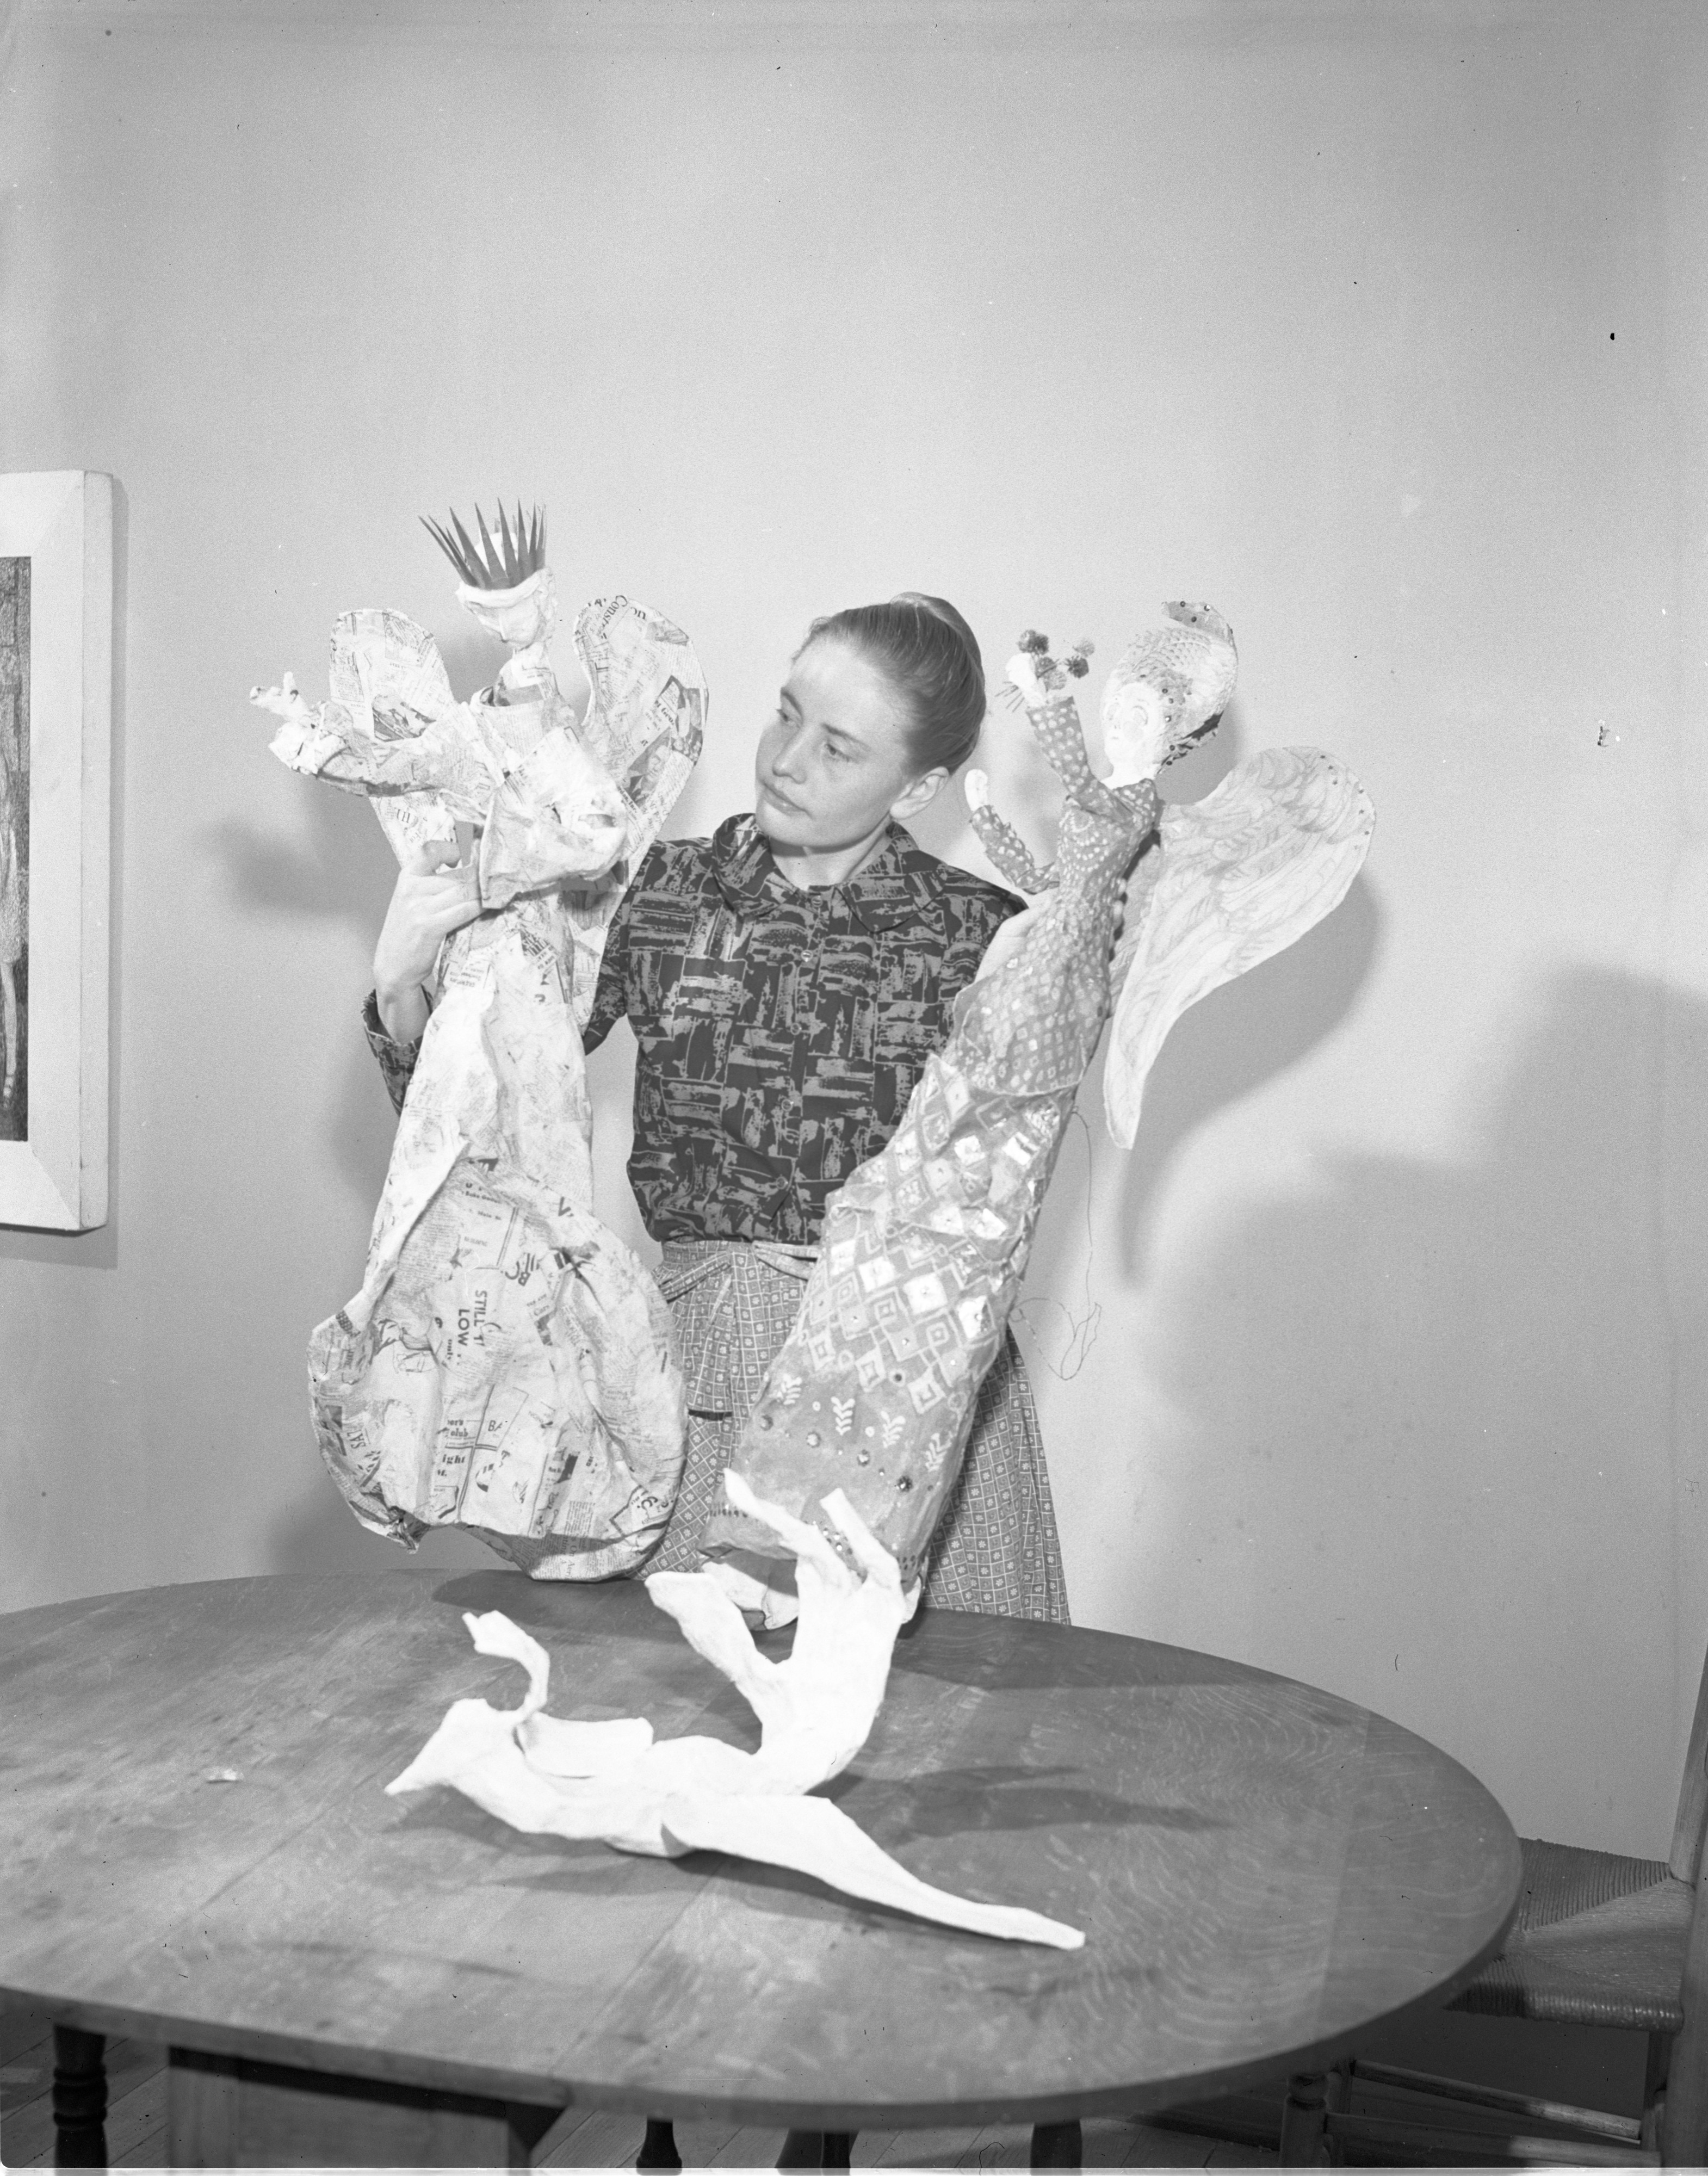 Ellen Wilt Displays Her Papier-Mâché Angels In Different Stages Of Completion, November 1950 image